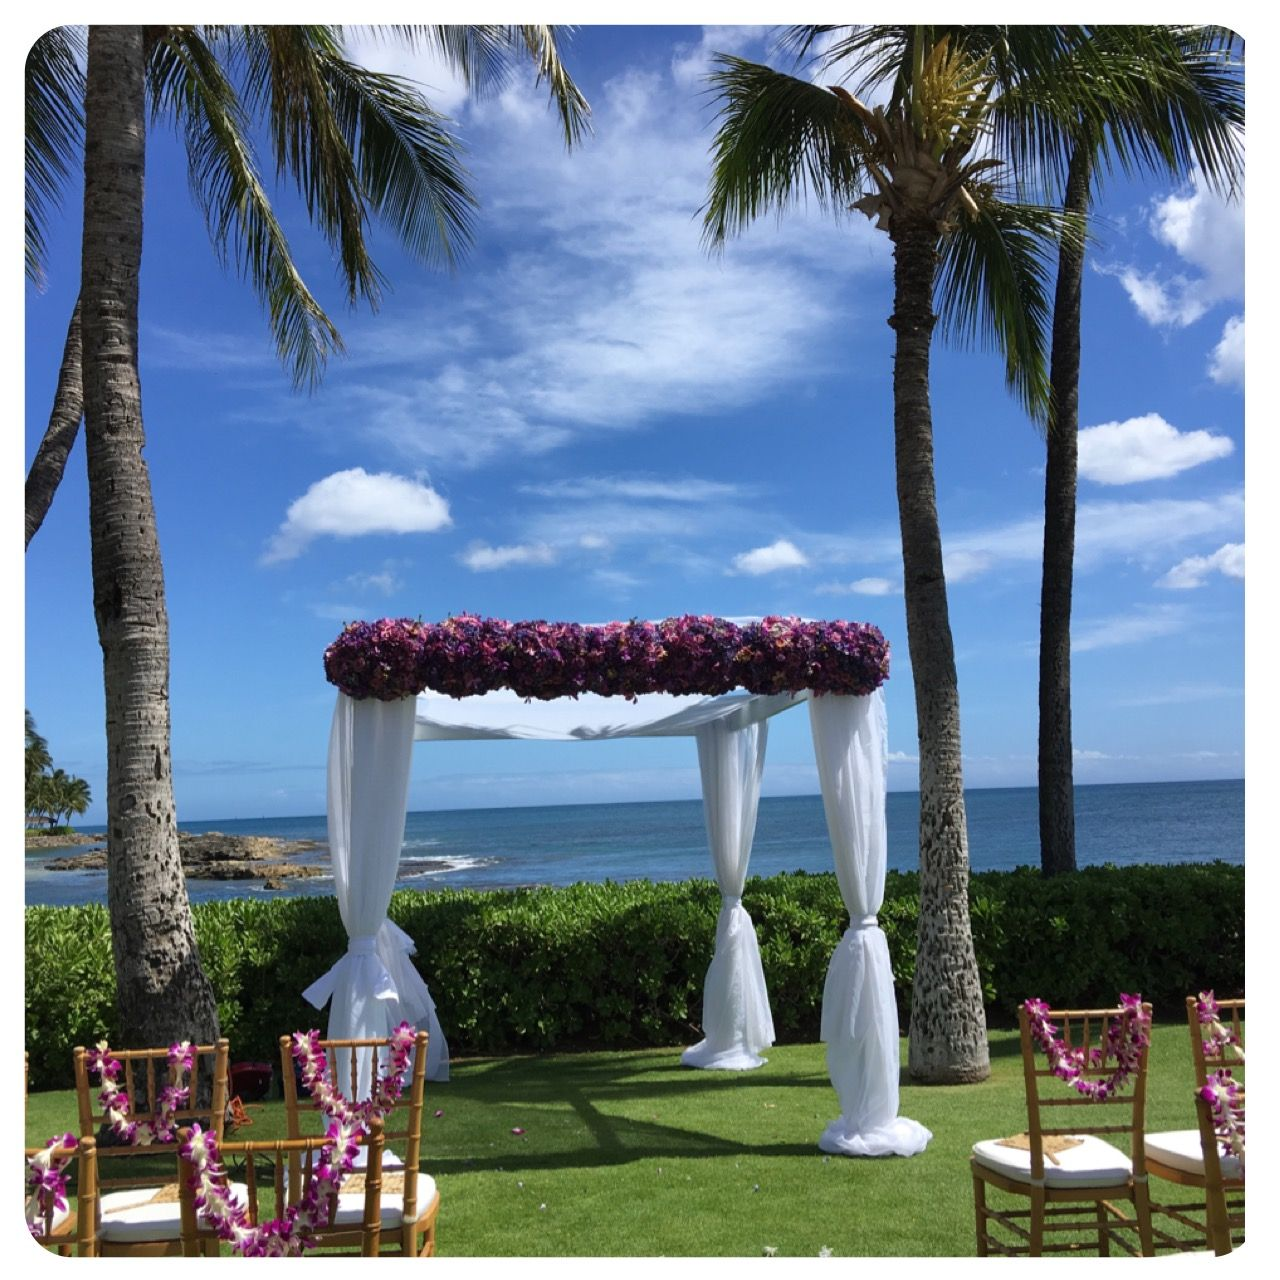 Waikiki Beach Wedding Ceremony: The Point At Paradise Cove On Oahu. Wedding Planned By